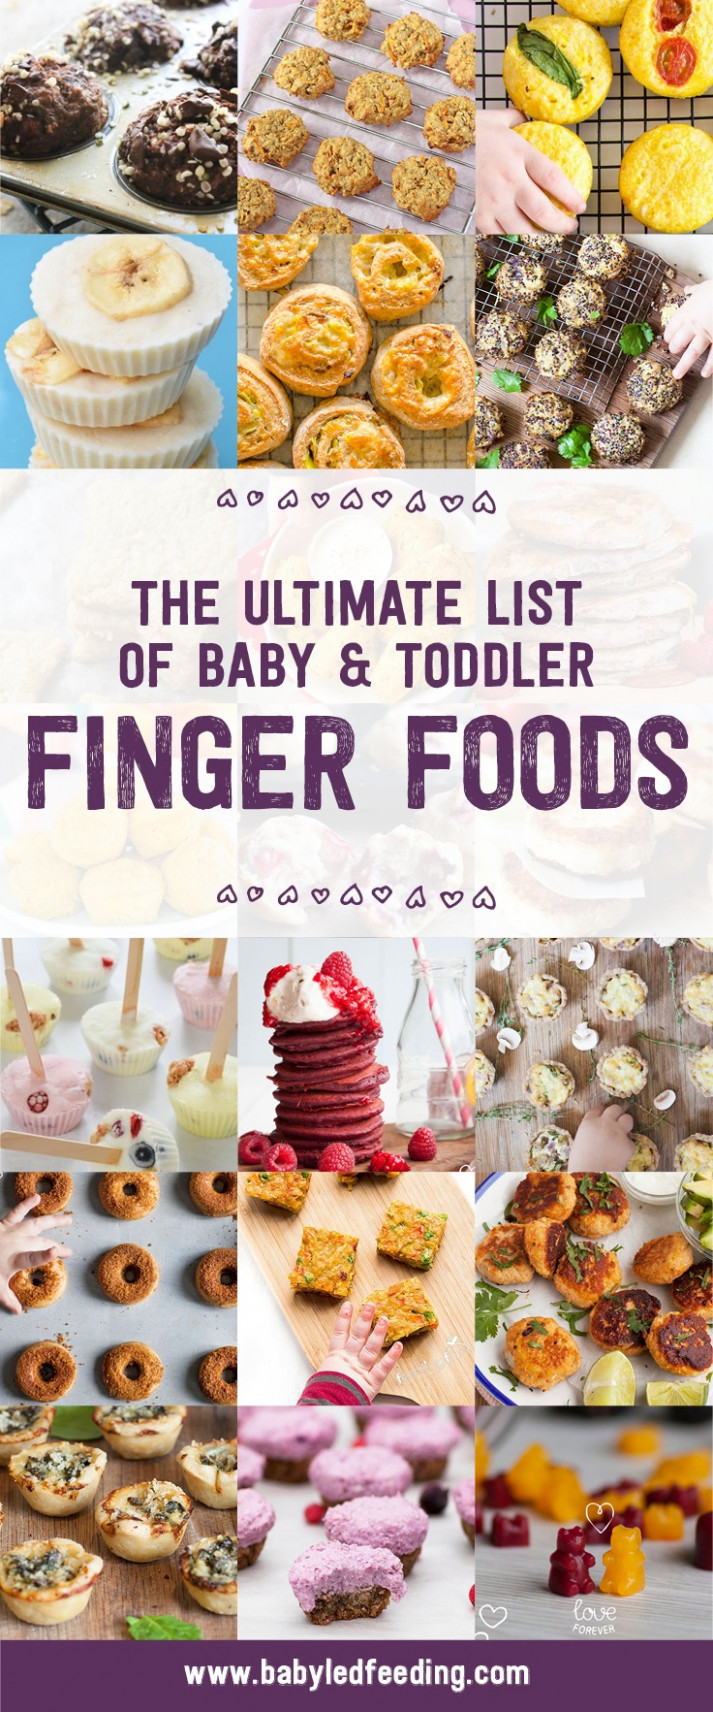 The Ultimate List of Baby & Toddler Finger Foods - Baby Led ..